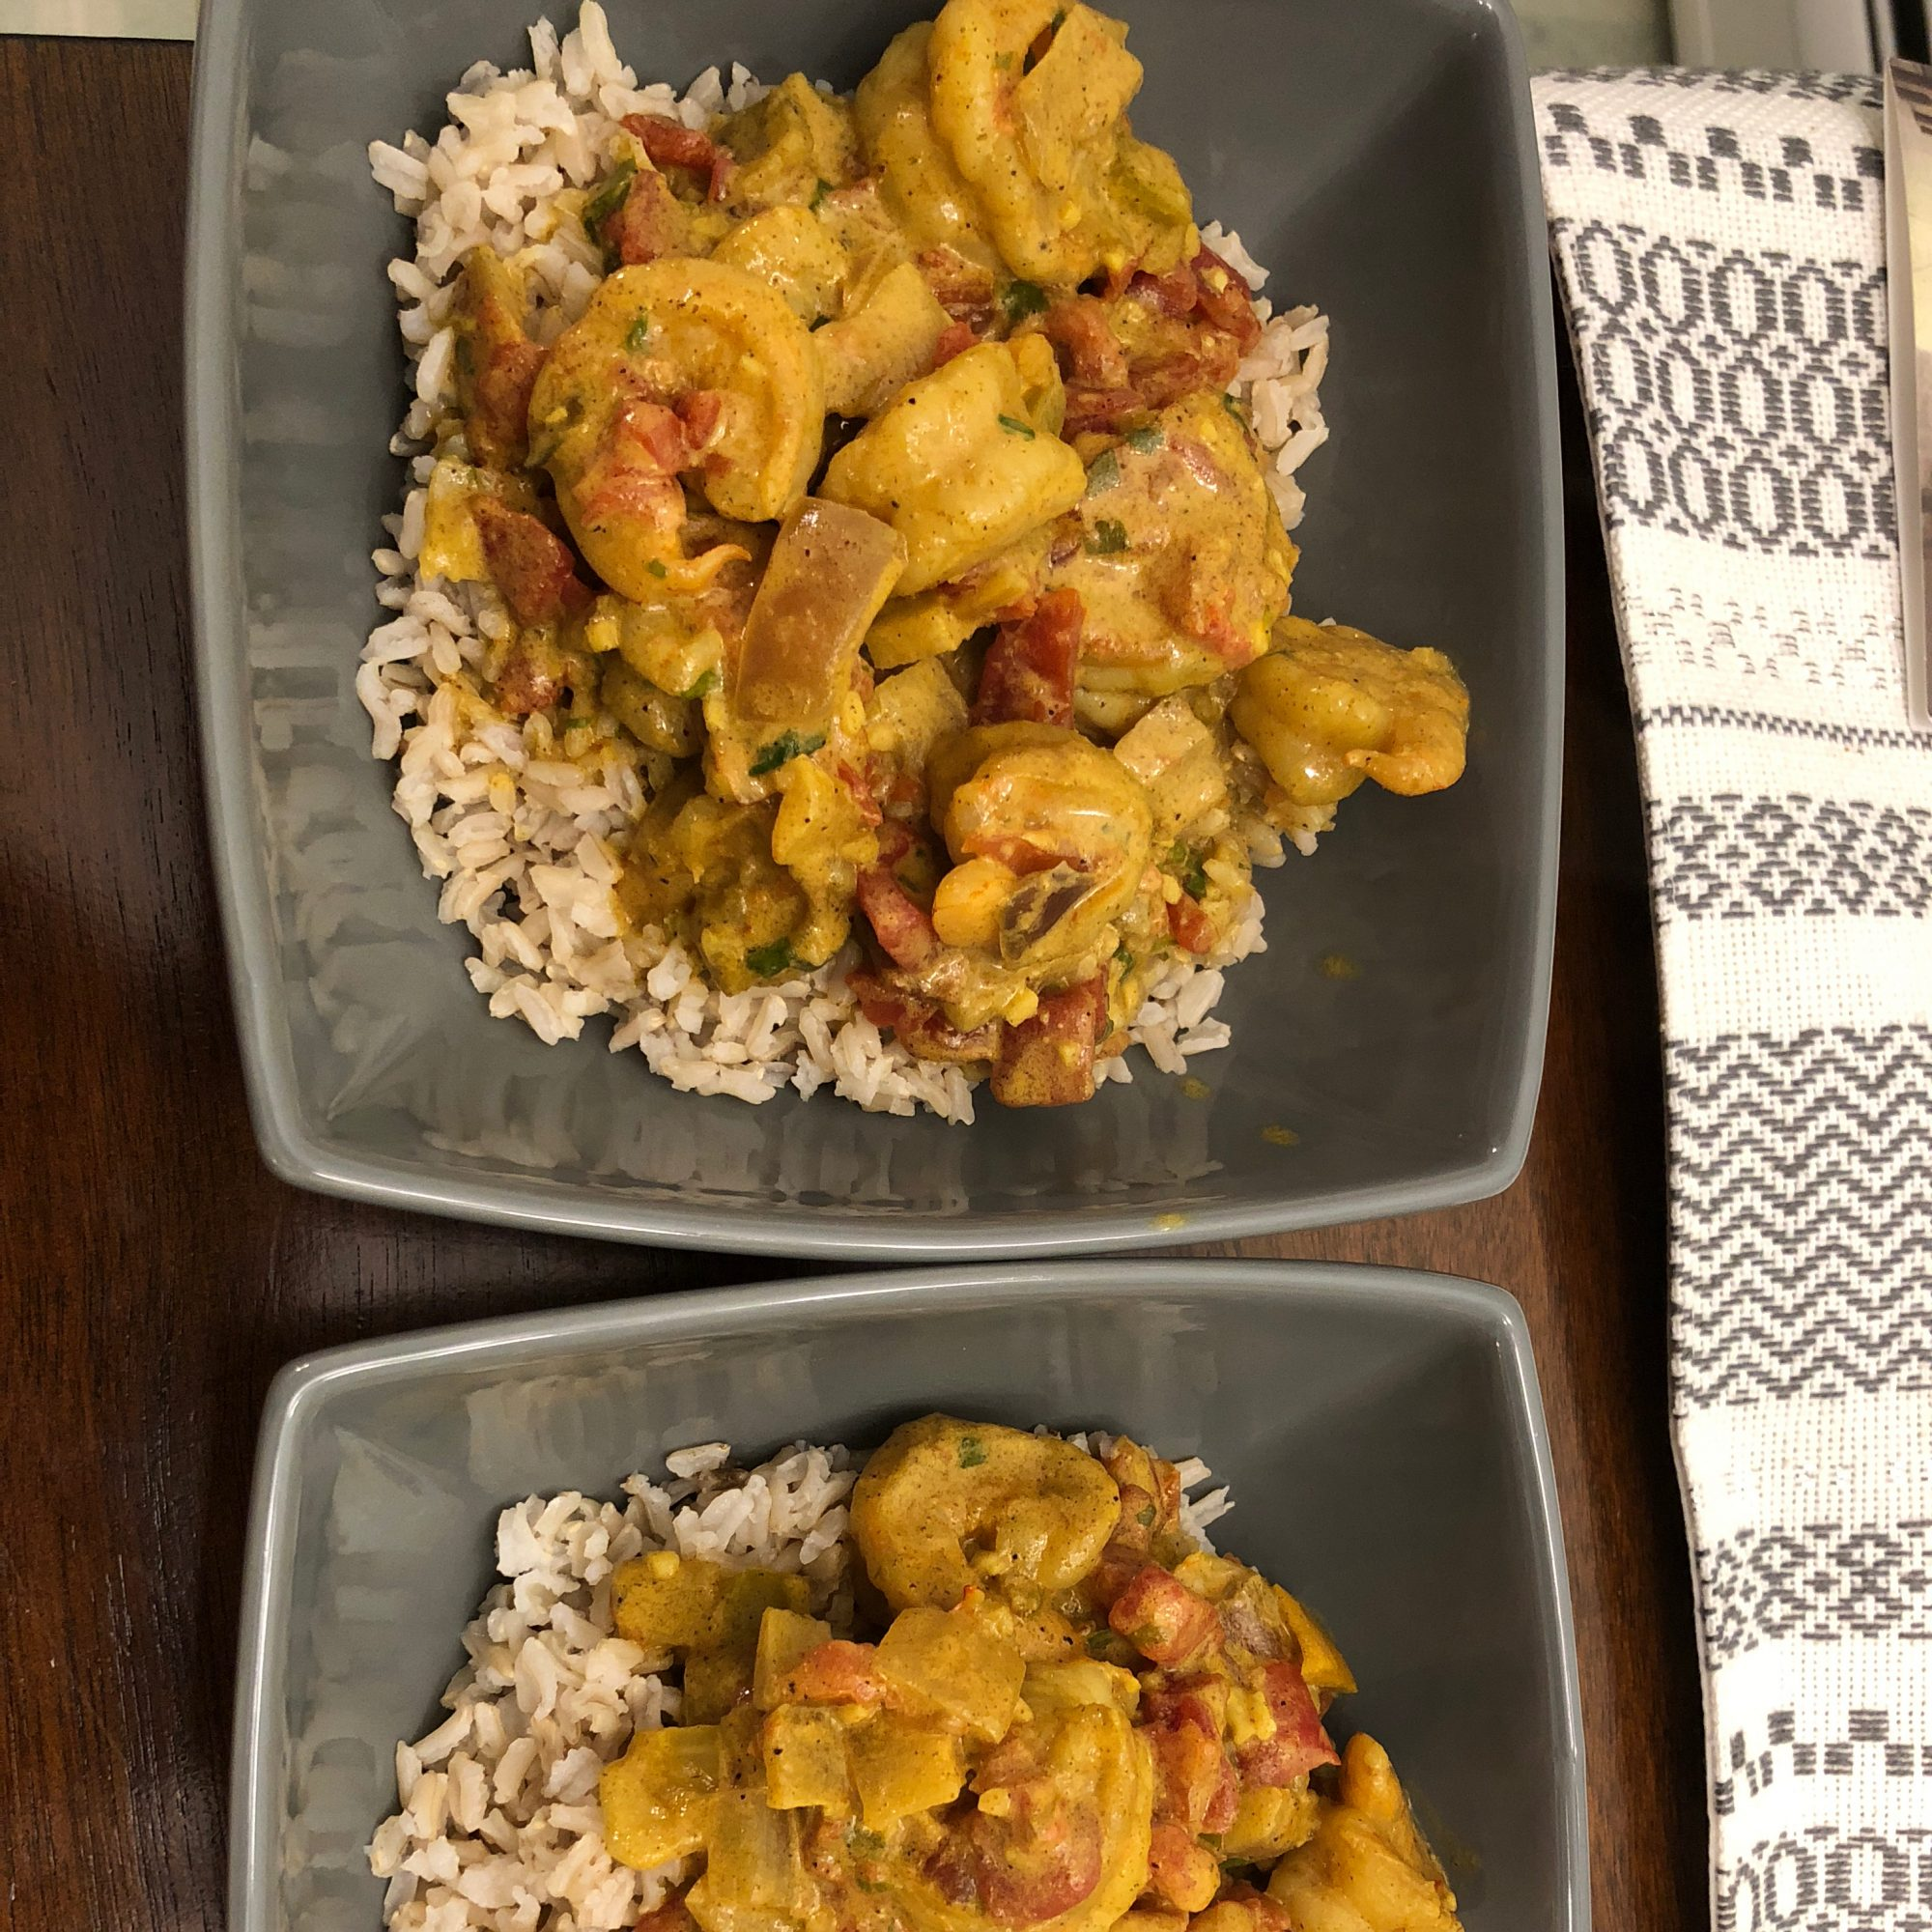 shrimp and clam curry over rice in bowls